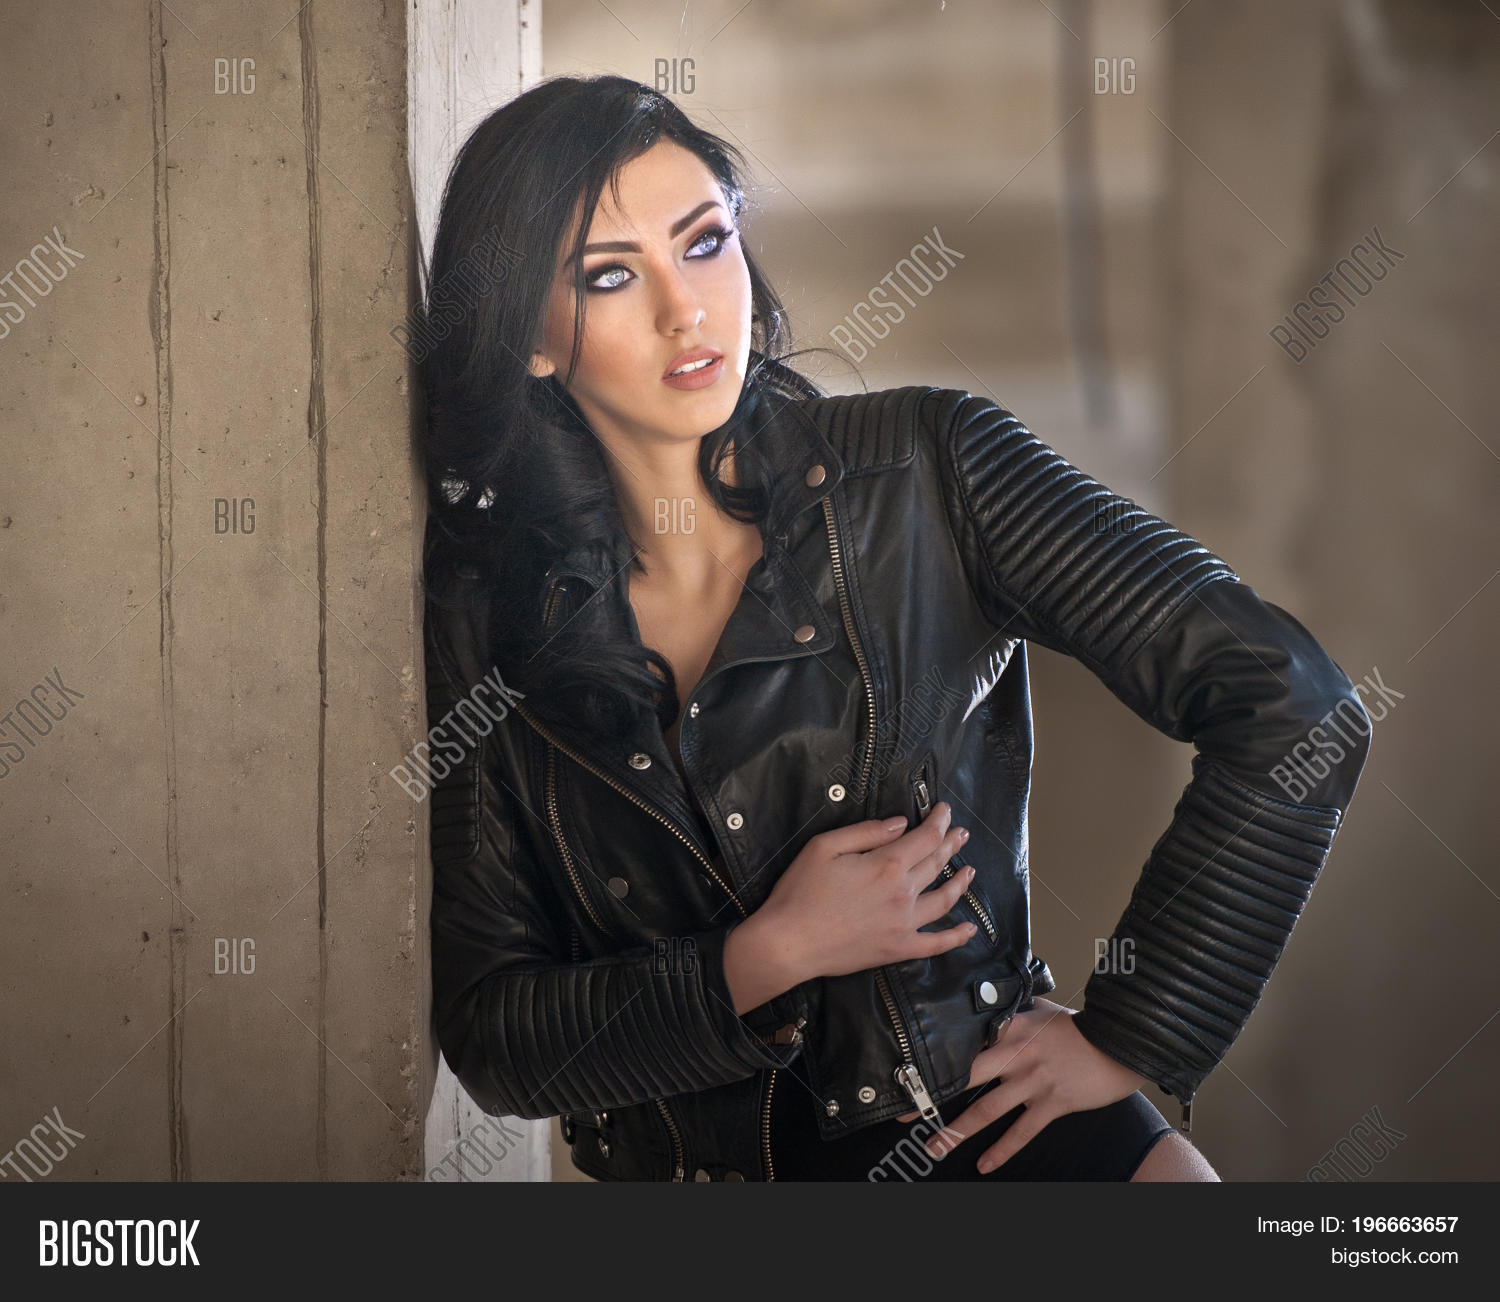 45c2a9b8d85 Portrait of beautiful sexy young woman with black outfit, leather jacket  over lingerie, in